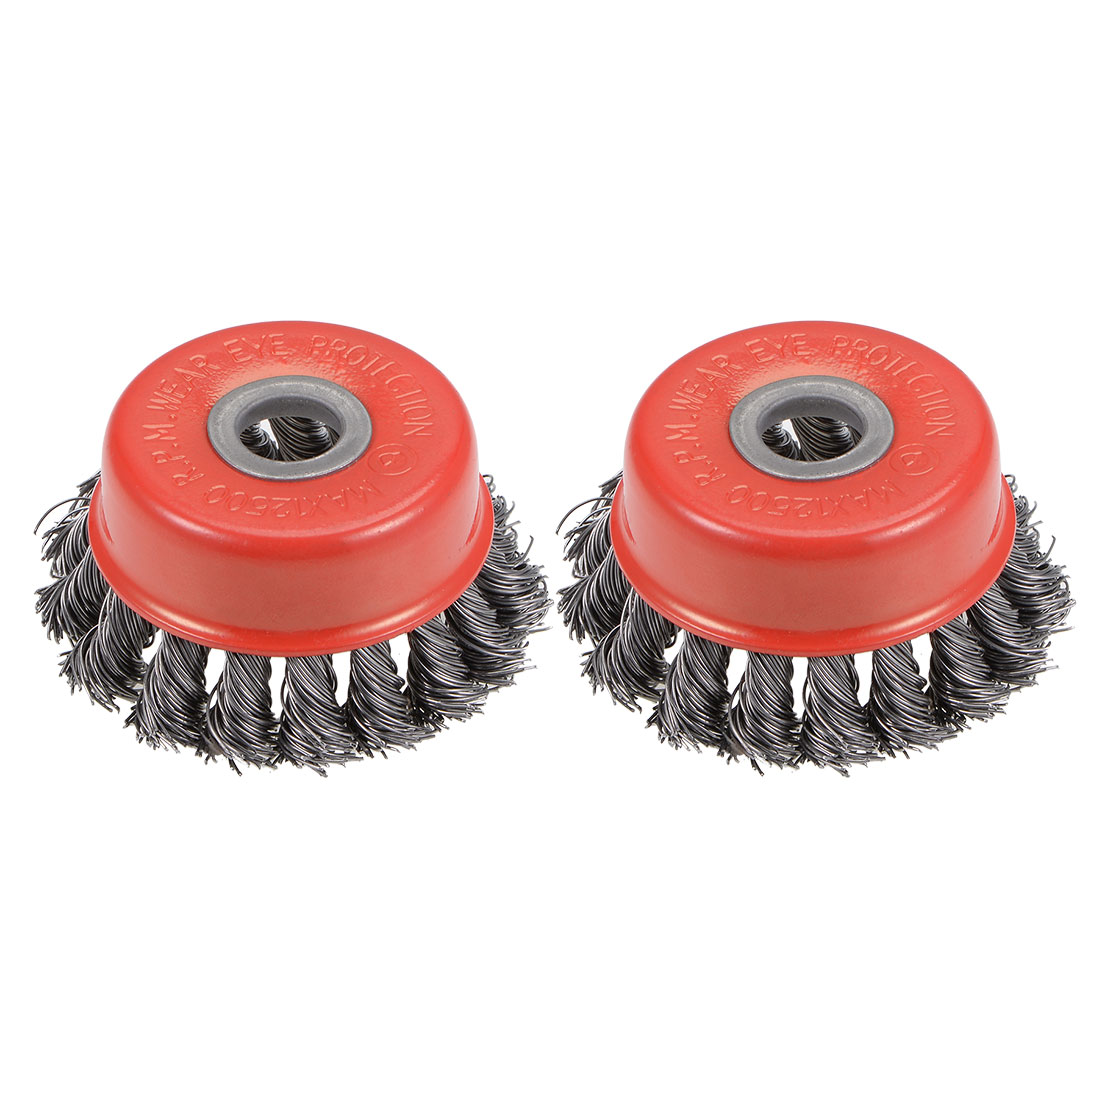 3-Inch Wire Cup Brush Twist Knotted Crimped Steel with 15mm Arbor Hole 2 Pcs